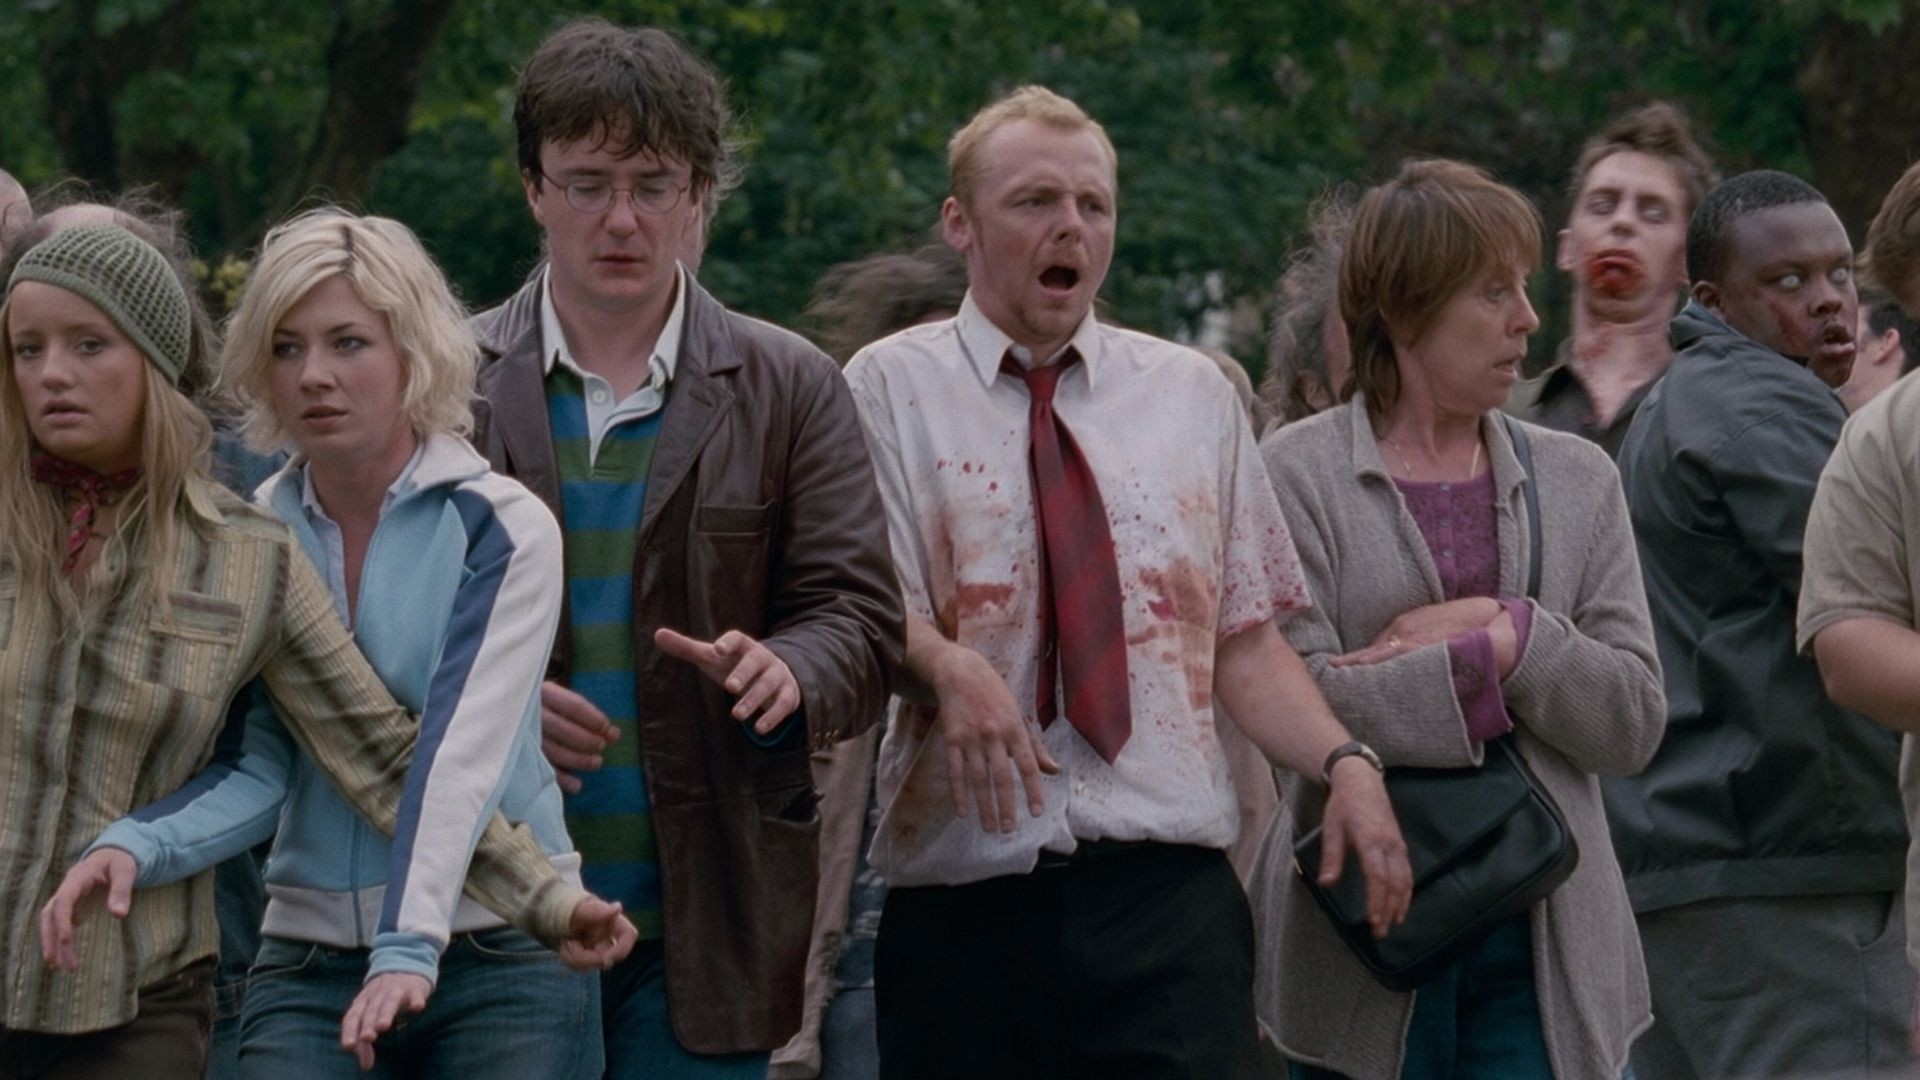 shaun-of-the-dead-film_84681-1920x1080.jpg